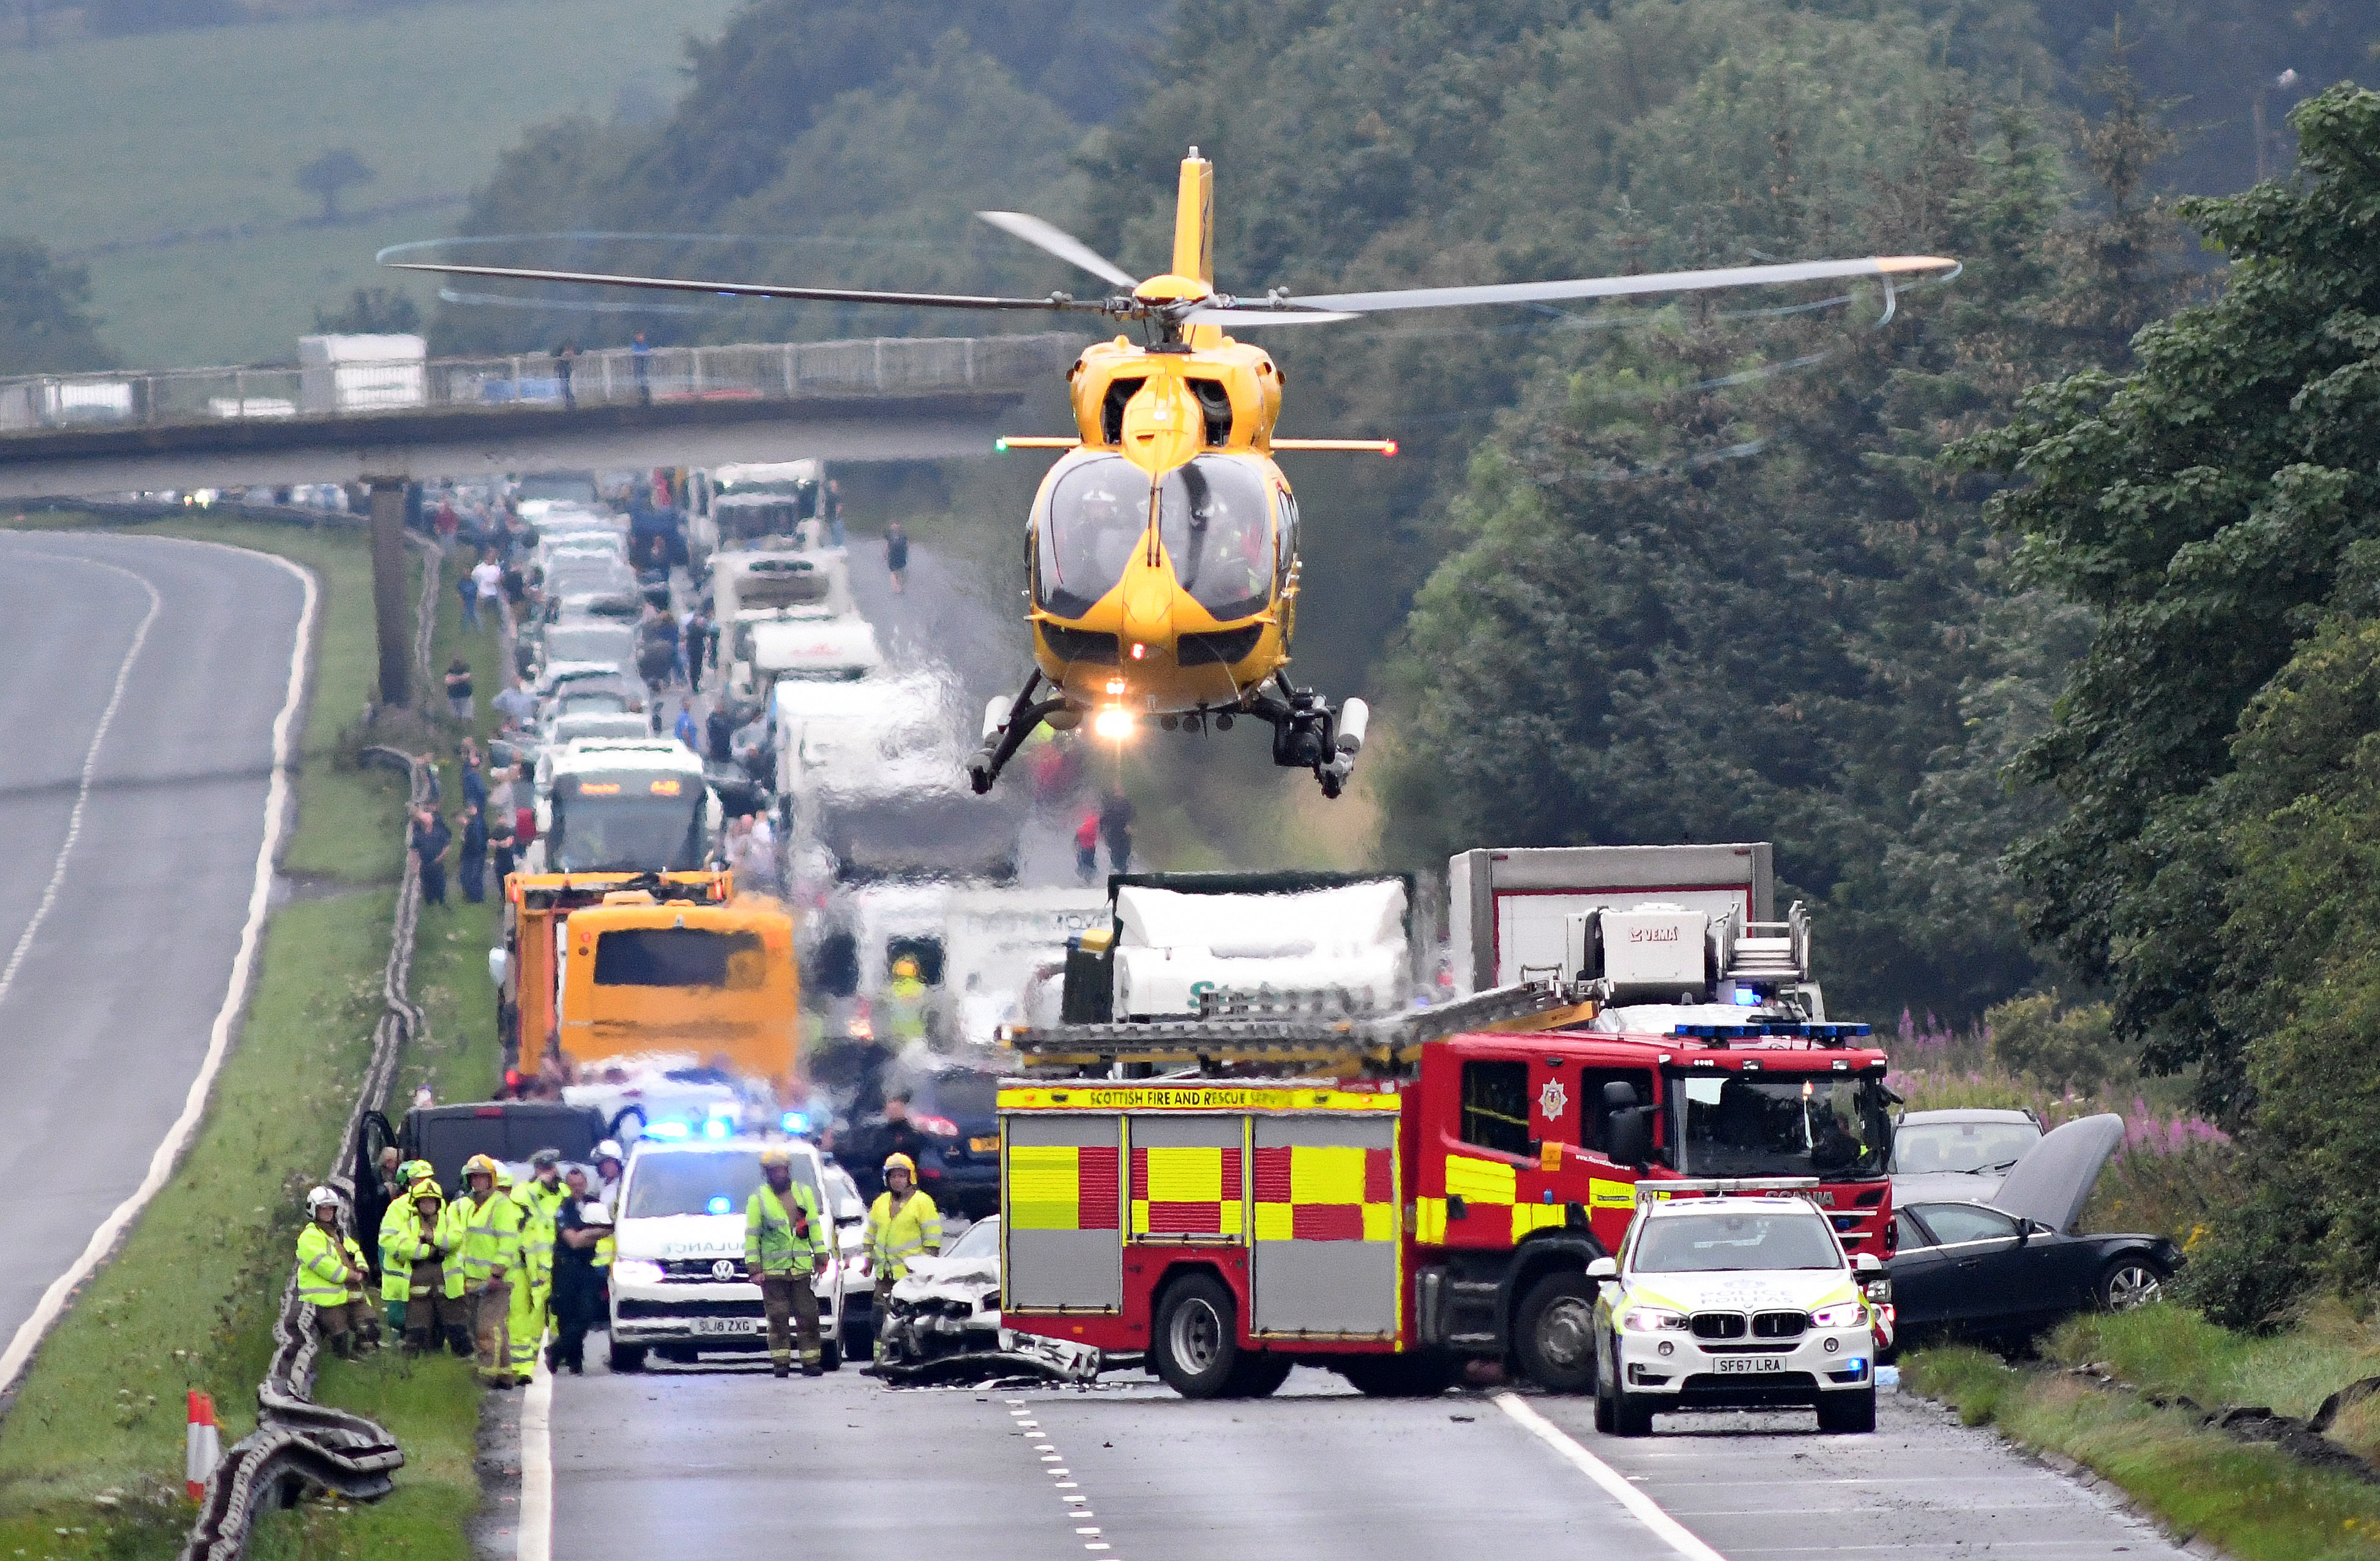 air ambulance at crash site